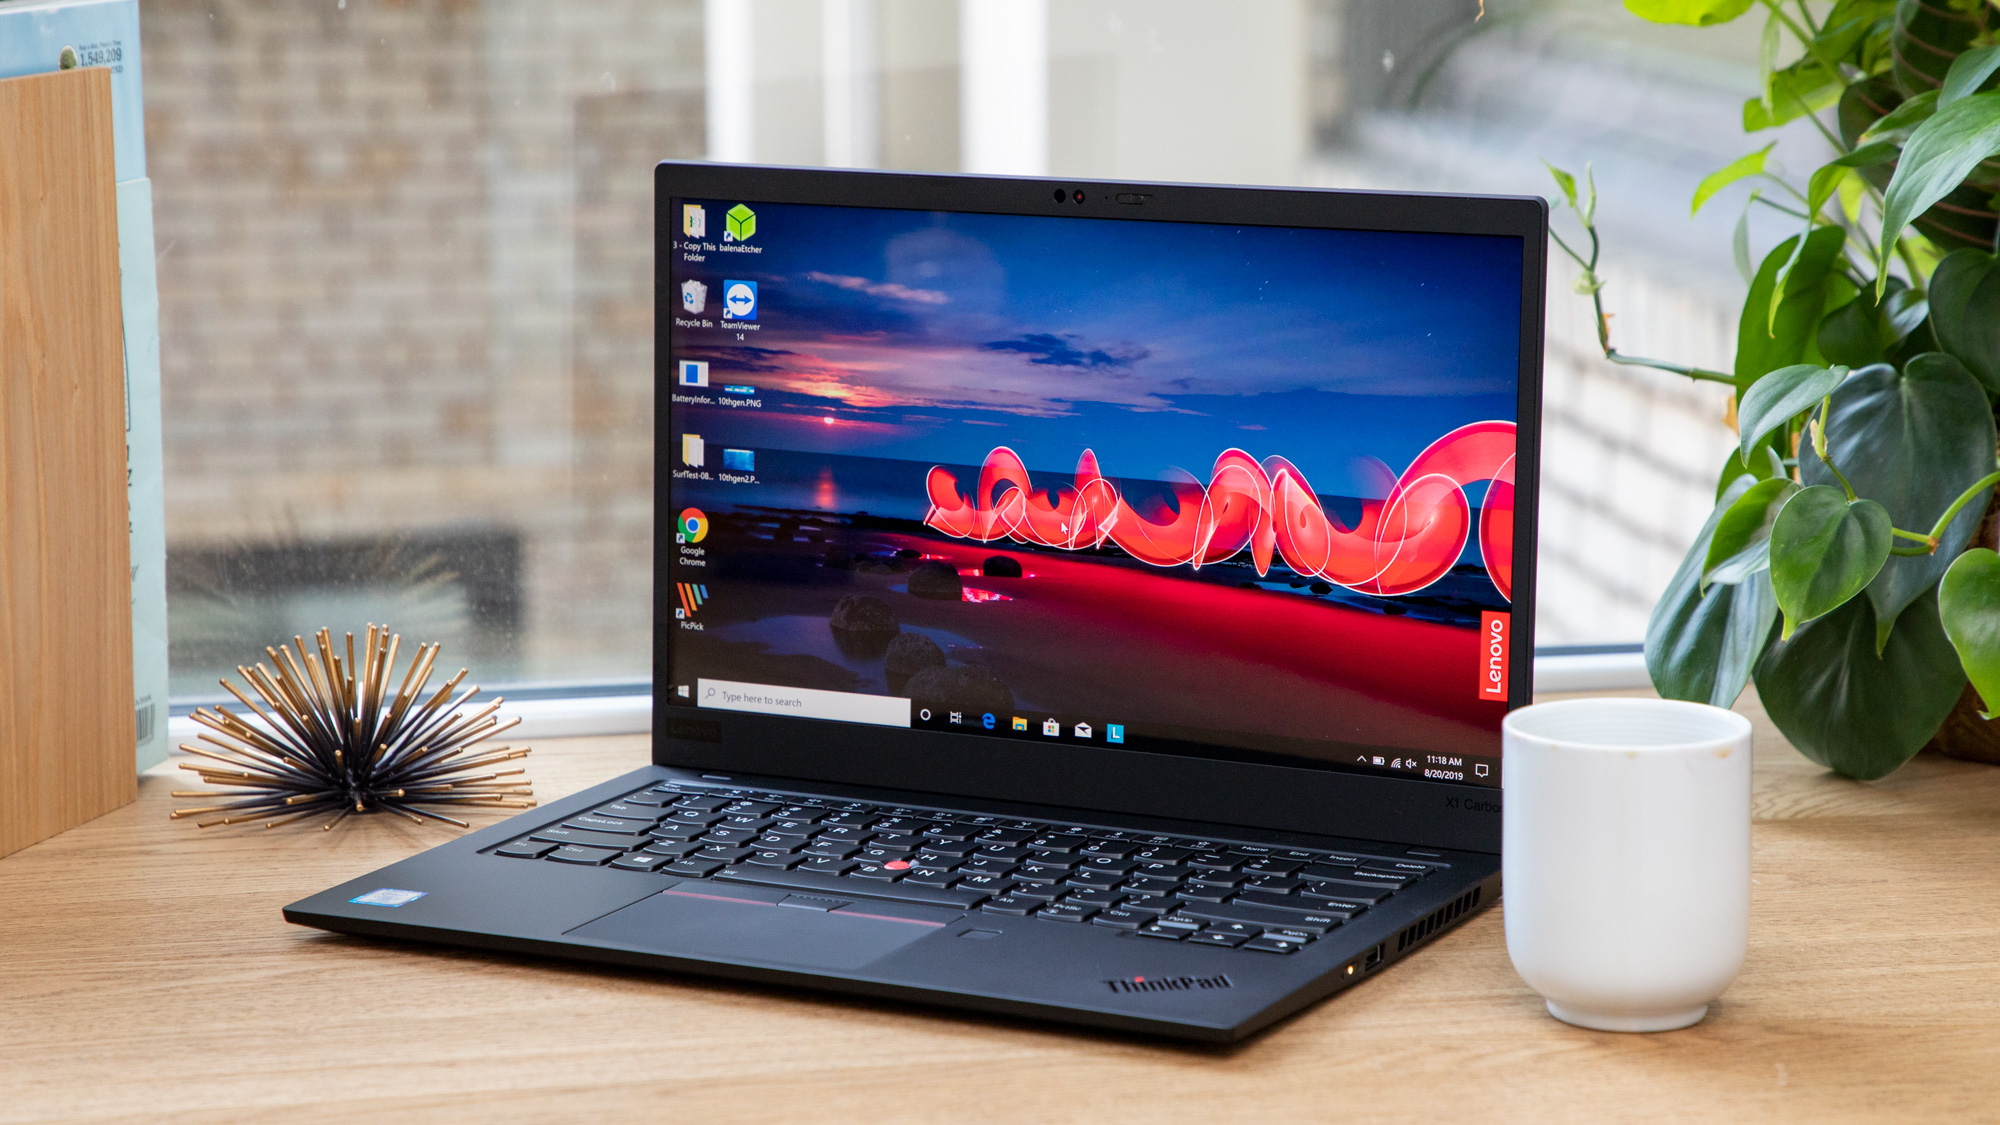 Top 5 Reasons Why Laptops are Better than Desktops